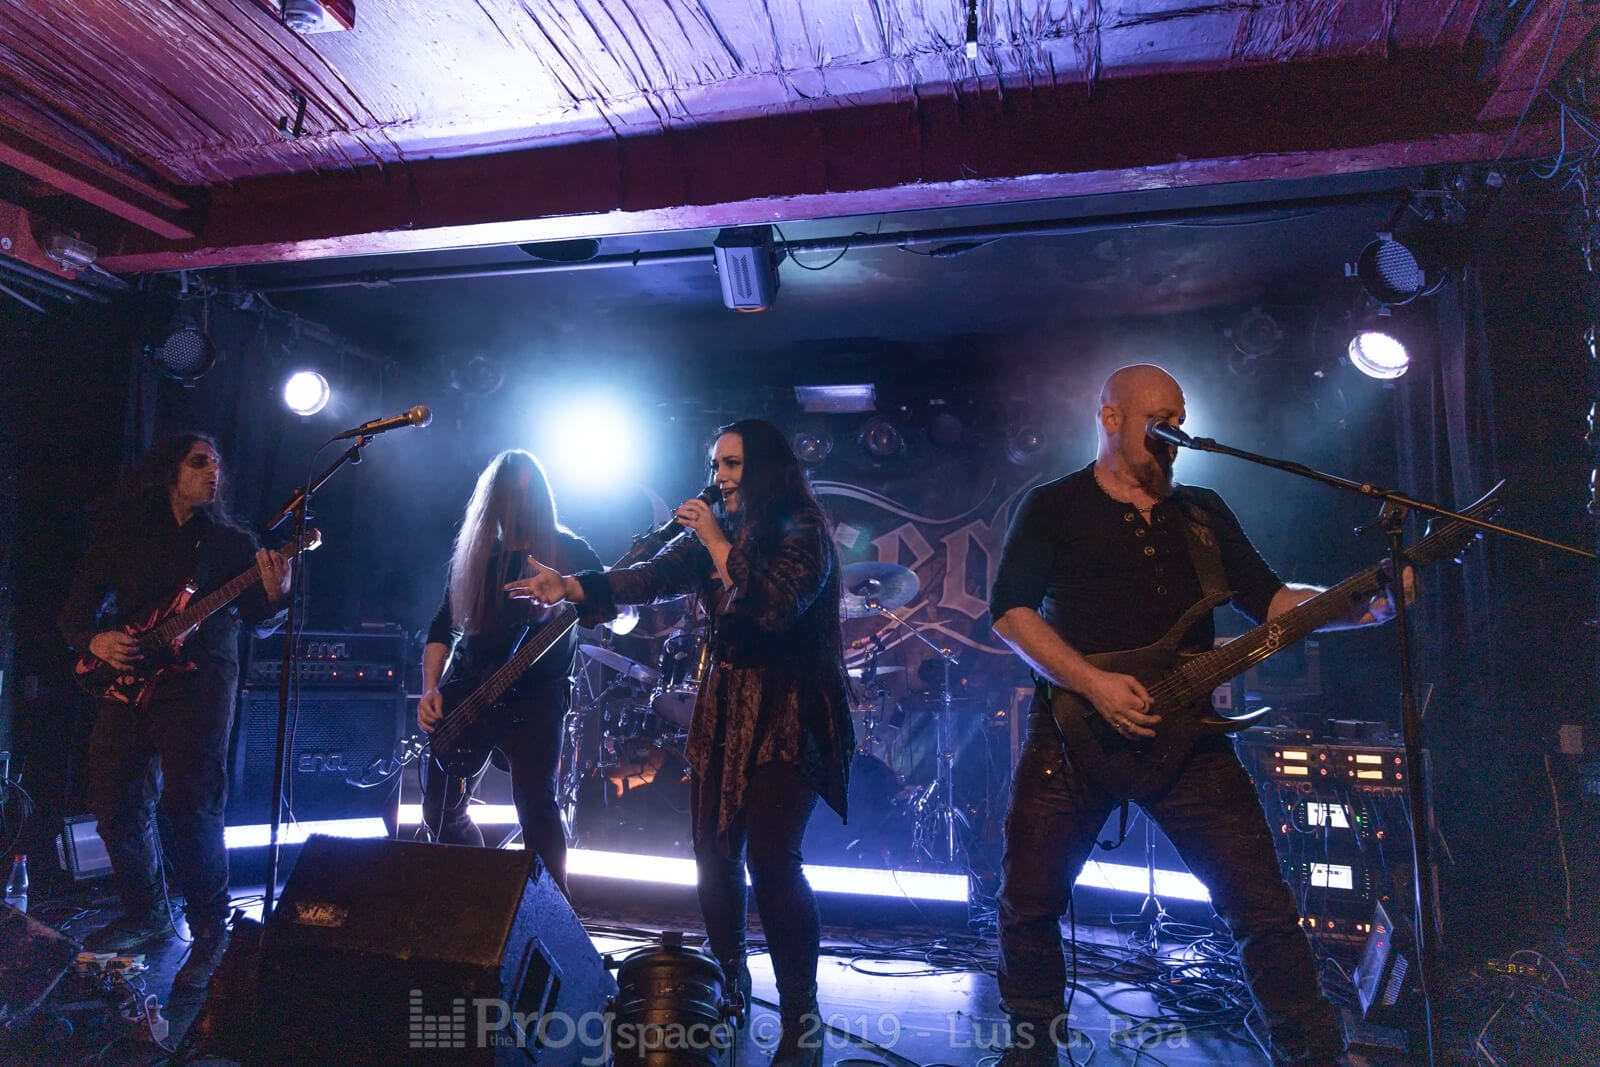 Hexed in Hamburg, March 7, 2019